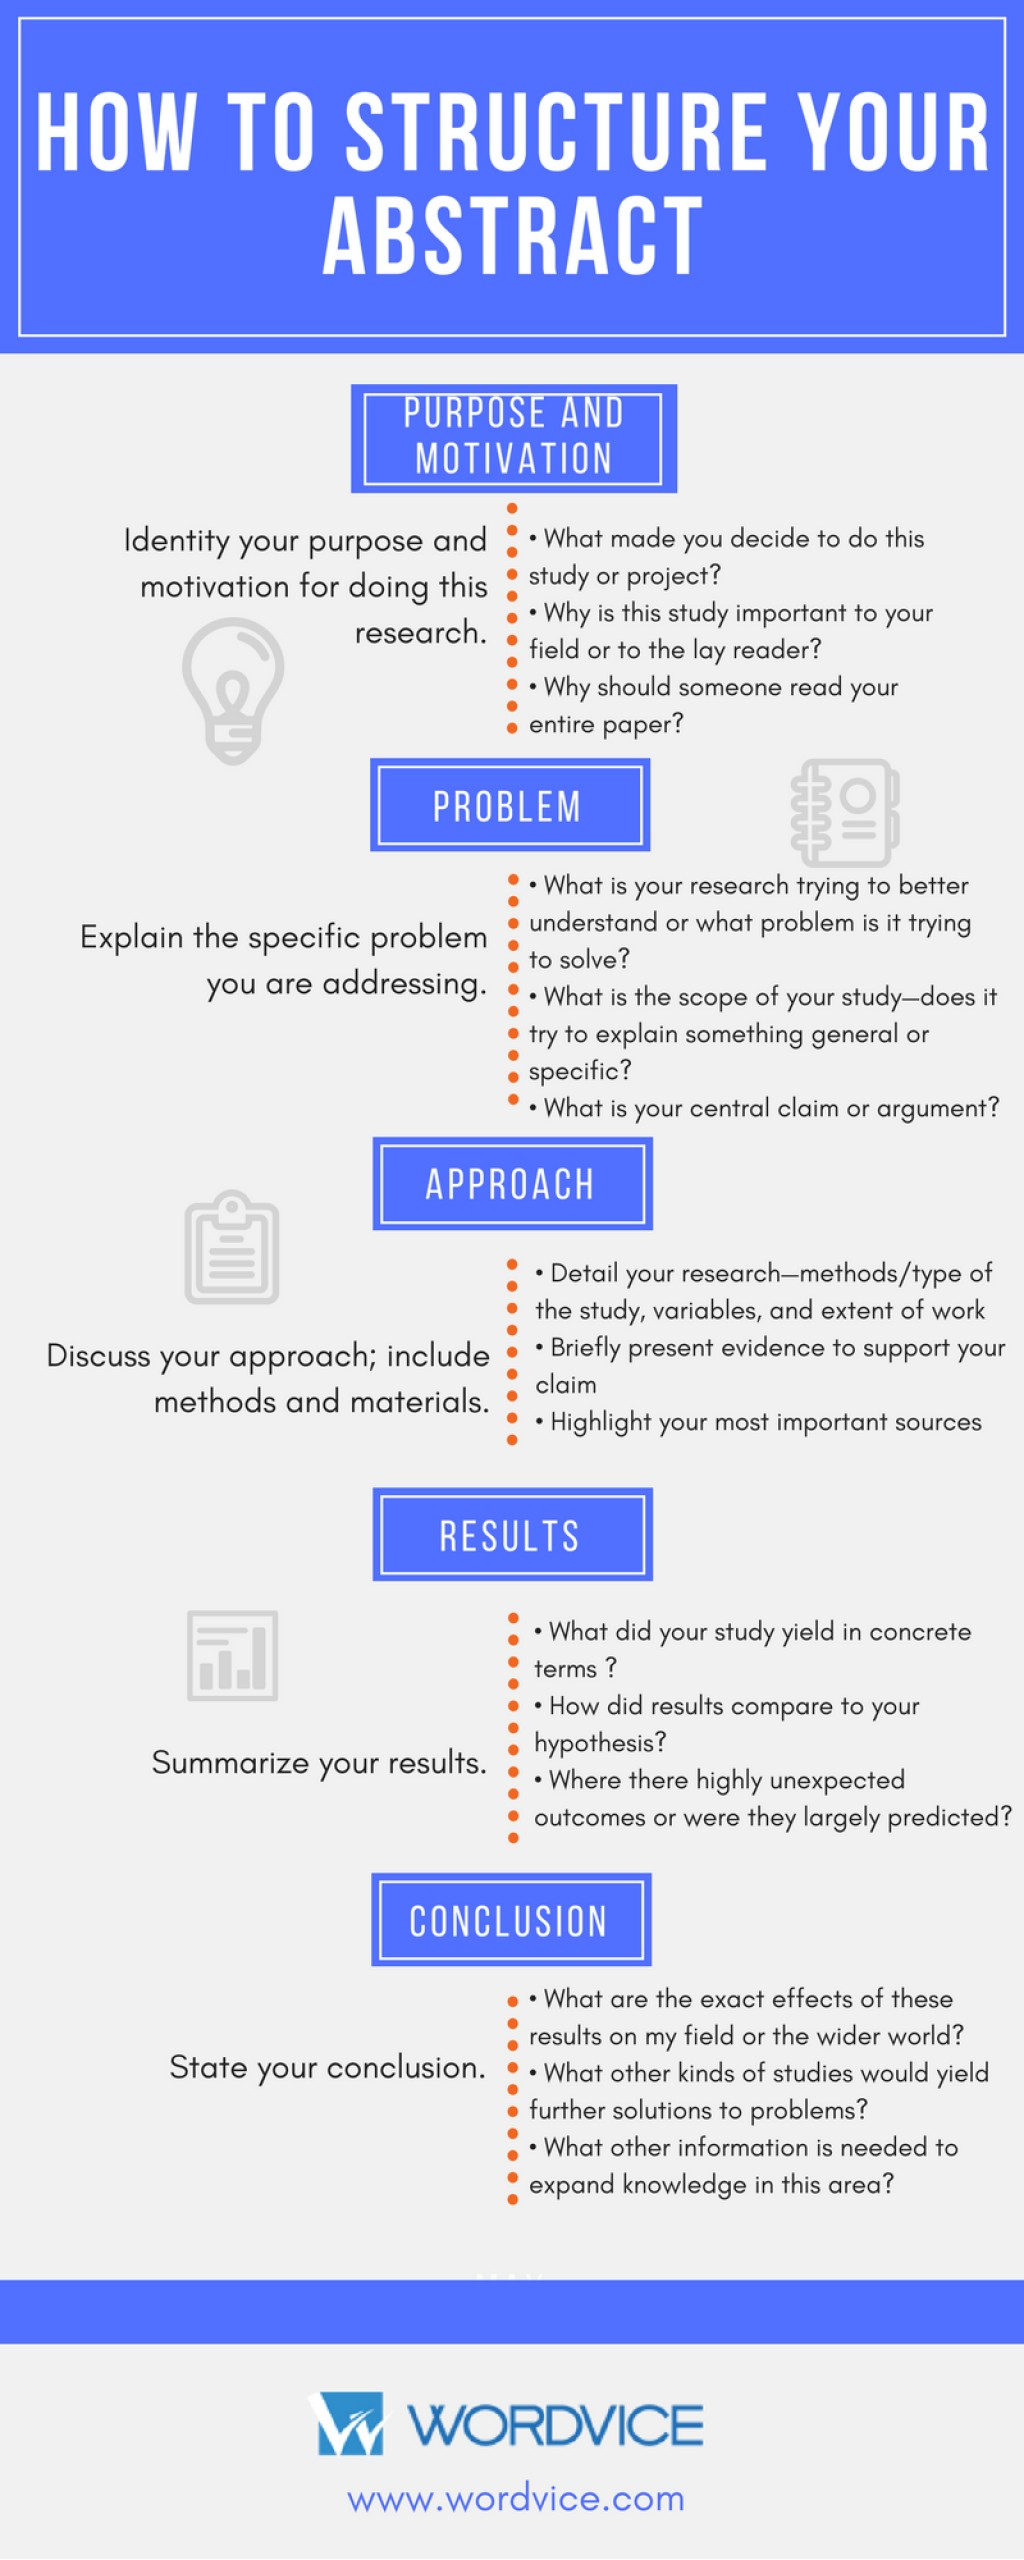 004 Abstract Of Research Paper How To Structure Your Imposing A About Teenage Pregnancy Pdf Part Large